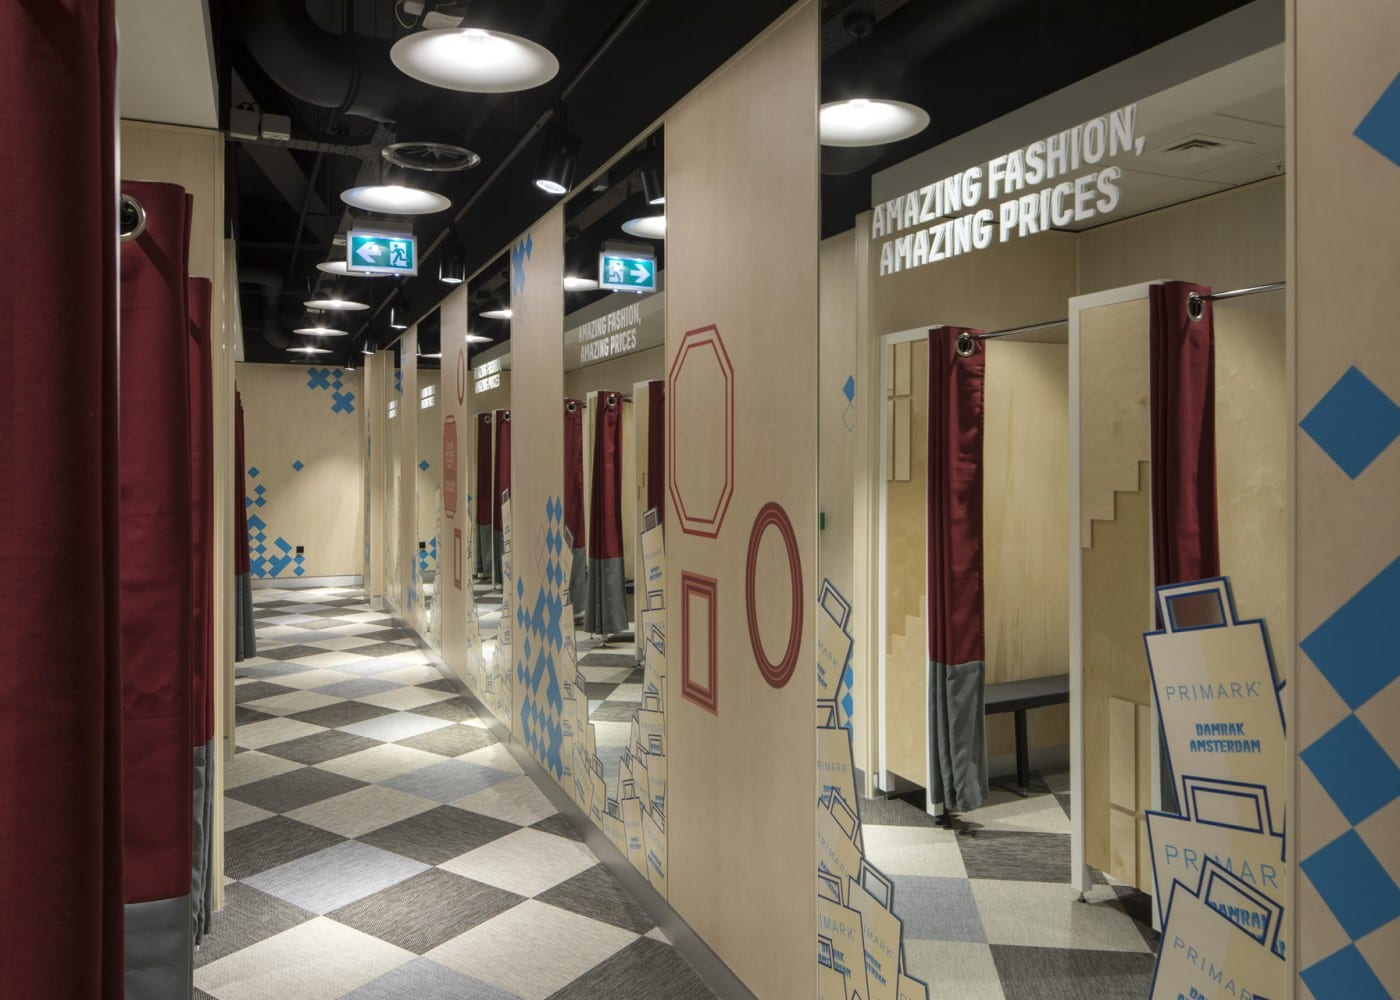 retail lighting design: Primark Amsterdam fitting rooms